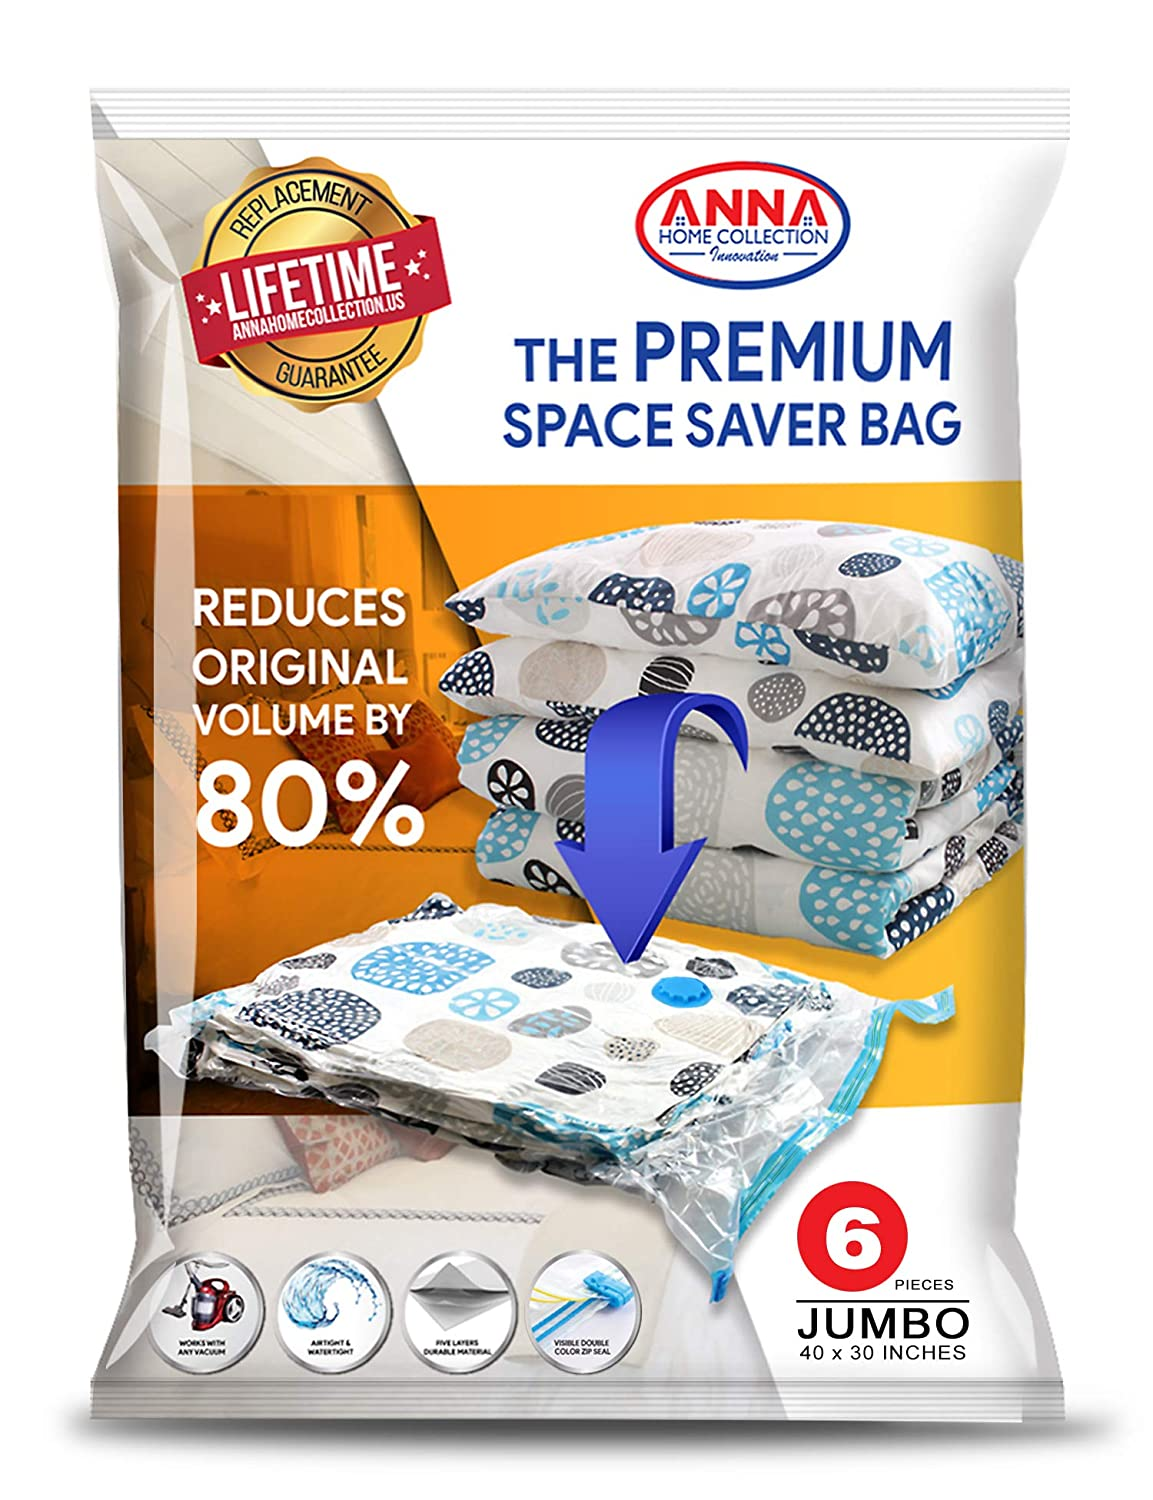 Anna Home Jumbo Vacuum Storage Bags (6 Jumbo) Space Saver Storage Bags for Travel. Durable and Reusable, Travel Hand Pump Included